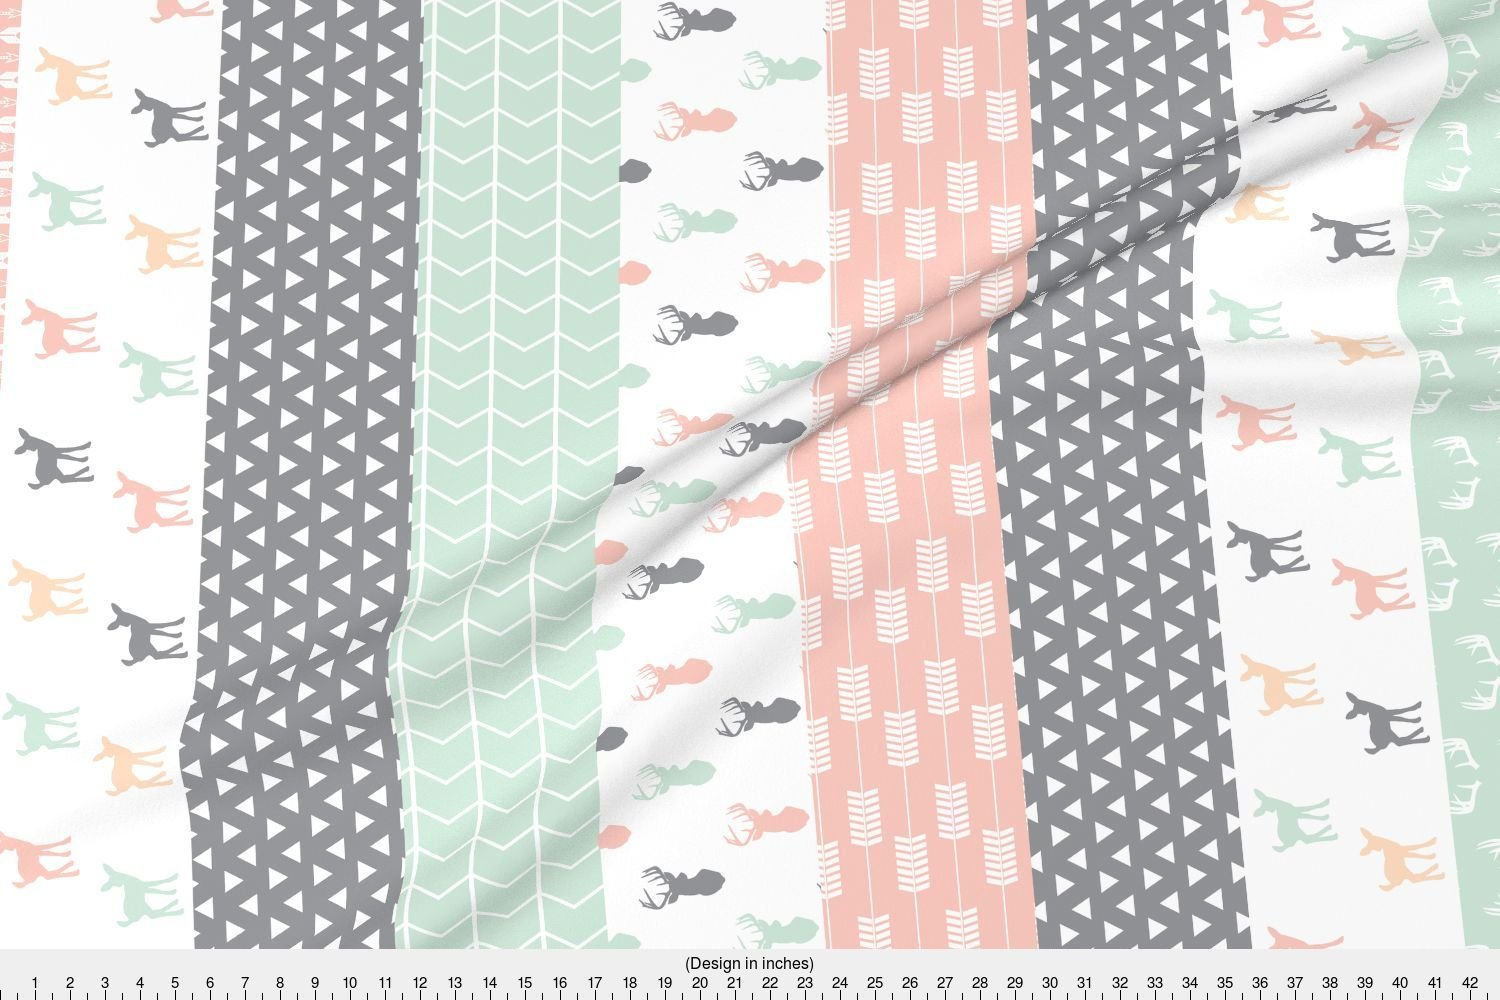 22b9dc50c98 Spoonflower Woodland Fabric - Girl Woodland Cheater Quilt Fabric by  littlearrowdesign - Woodland Fabric Printed on Basic Cotton Ultra Fabric by  The Yard